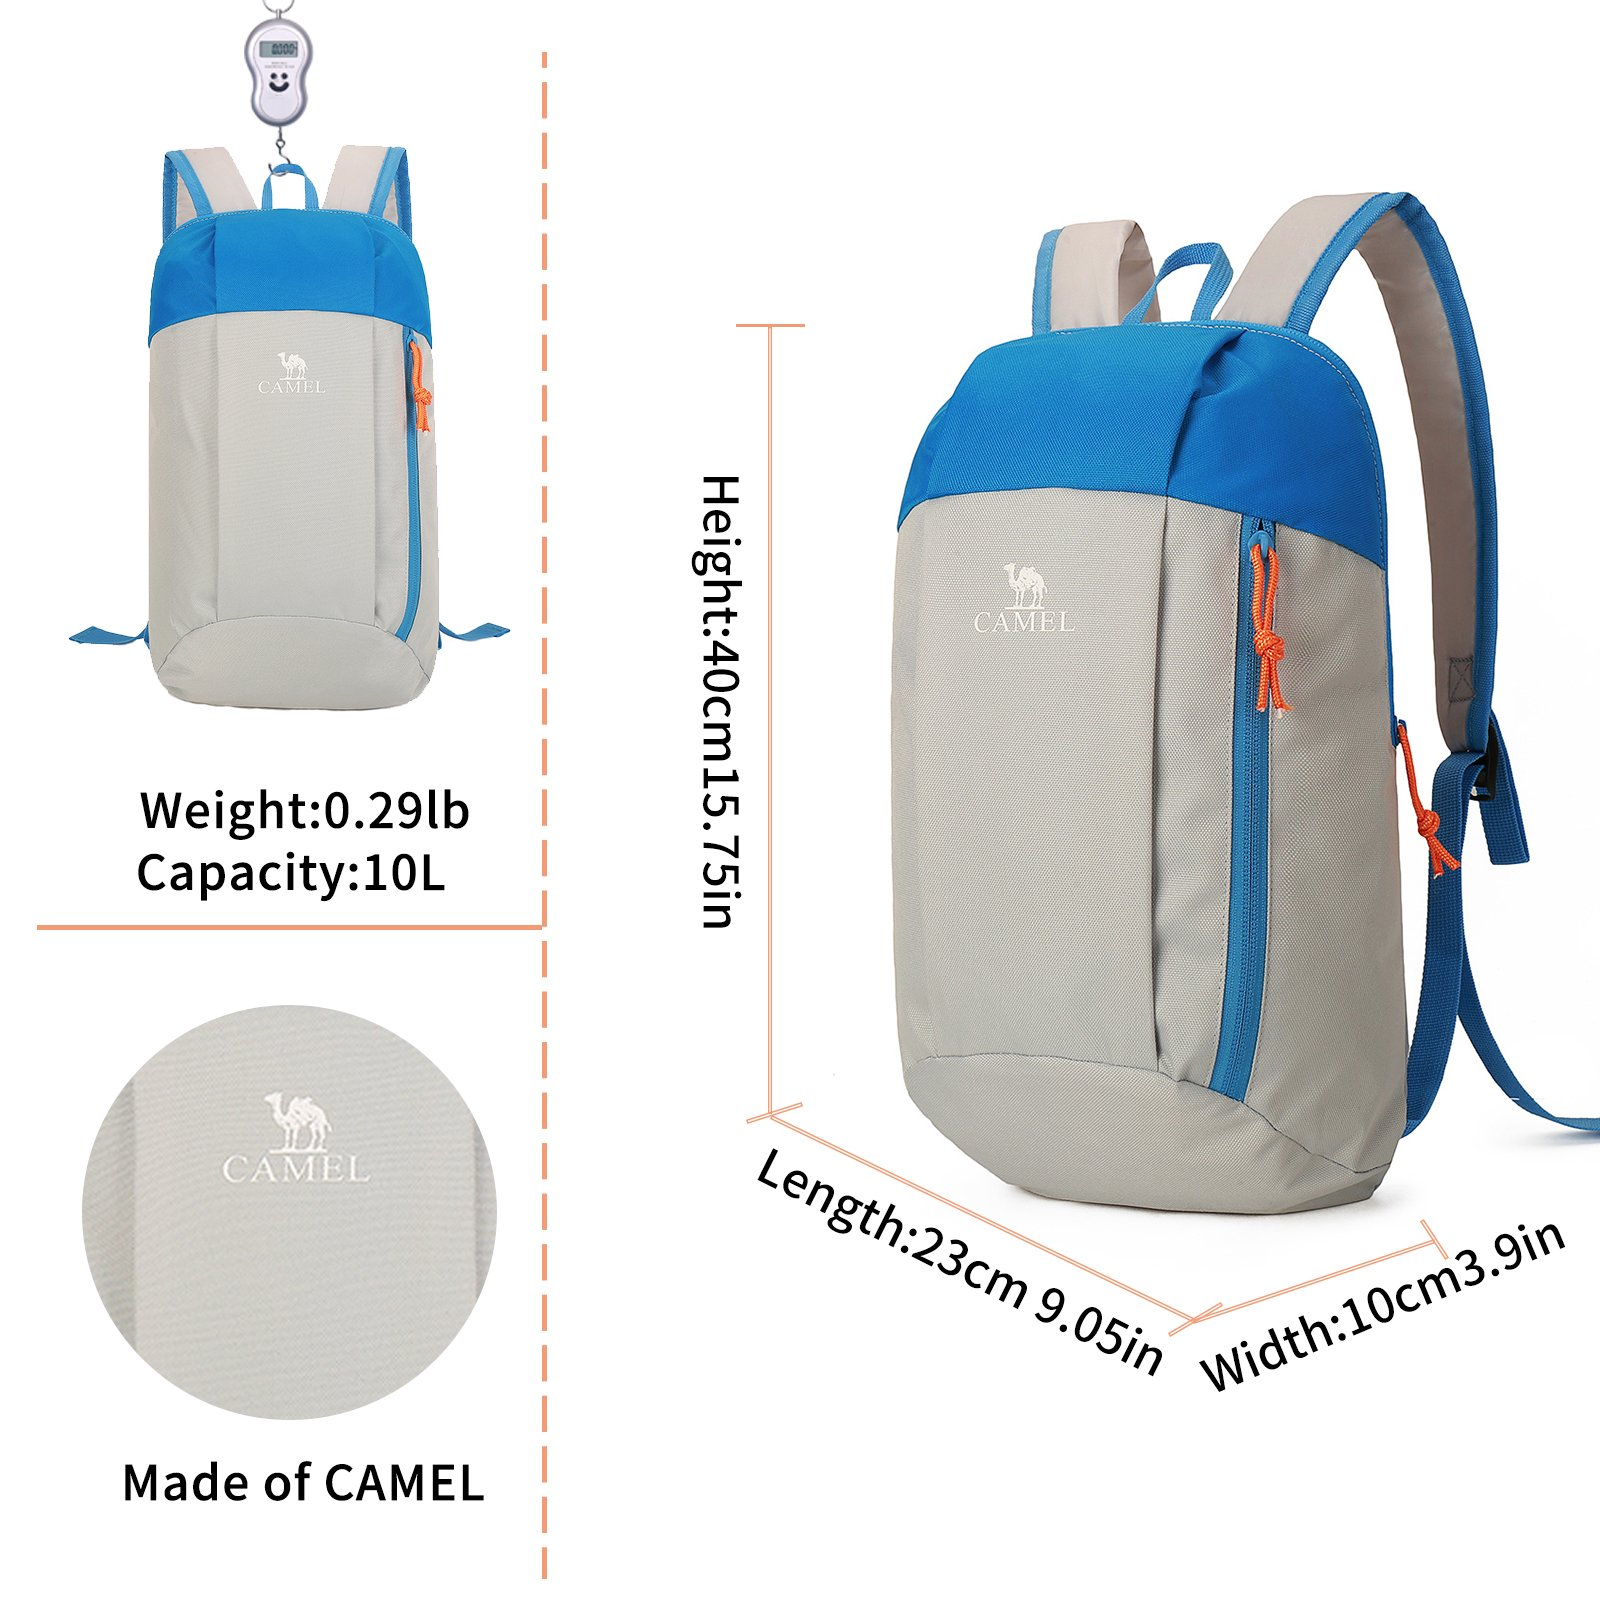 Camel 10L Lightweight Travel Backpack Outdoor Mountaineering Hiking Daypack with Durable & Waterproof (Light Gray)